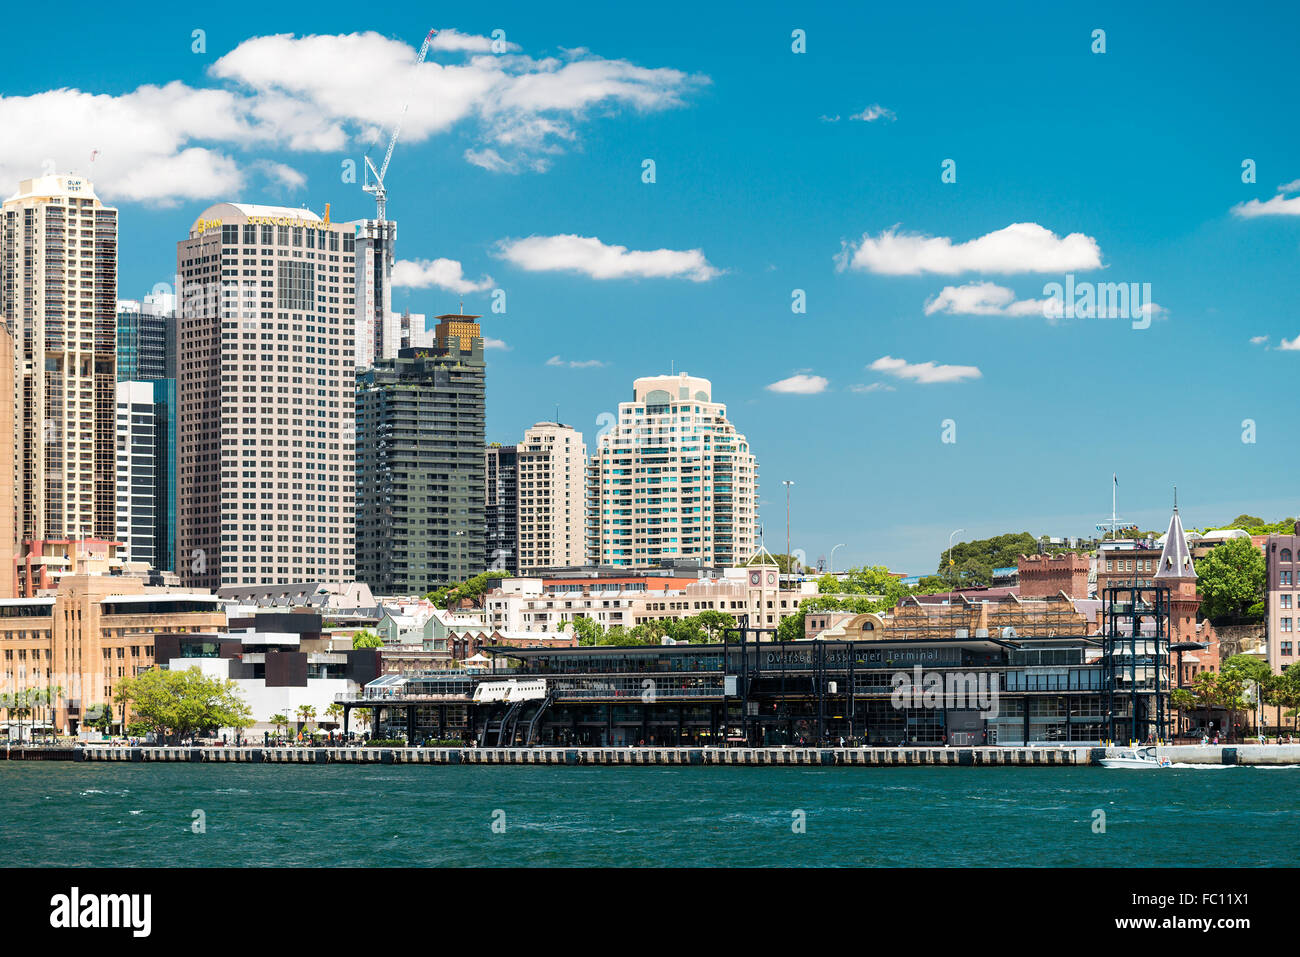 Sydney, Australia - November 09, 2015: Overseas Passenger Terminal view from a ferry towards the Circular Quay on - Stock Image